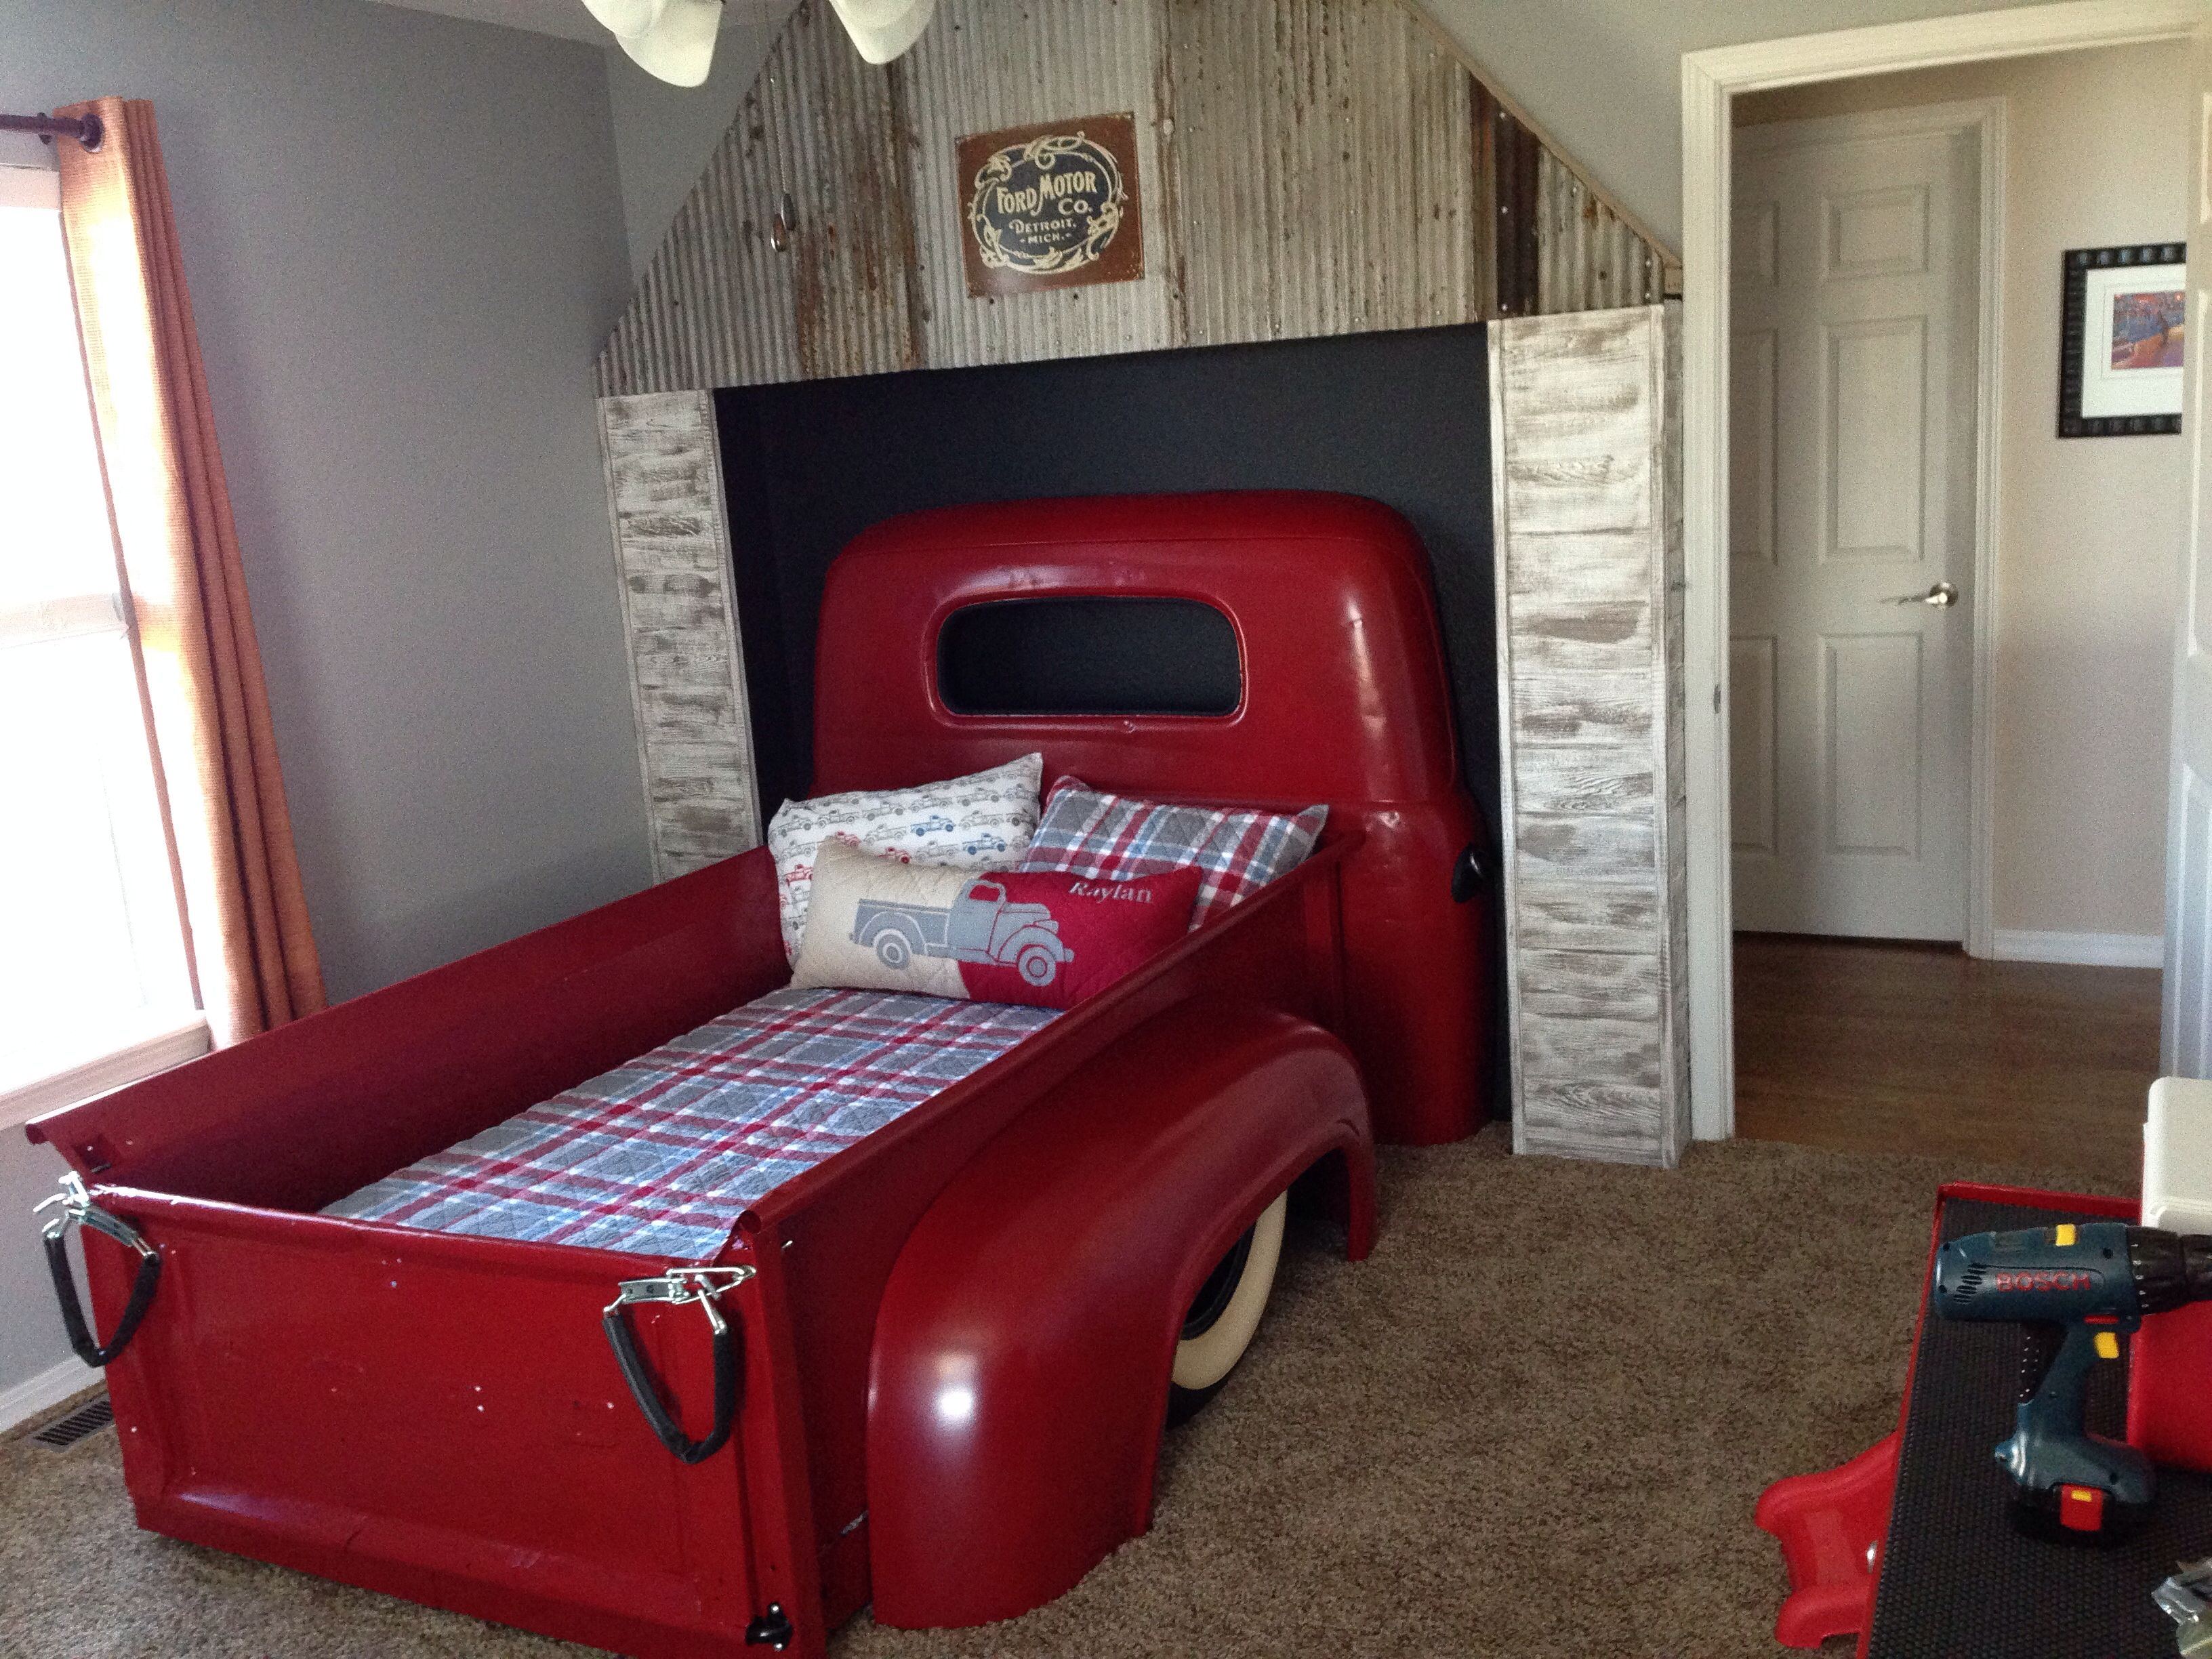 Cool toddler beds for boys - 17 Best Ideas About Toddler Beds For Boys On Pinterest Toddler Bedroom Ideas Toddler Rooms And Toddler Bed